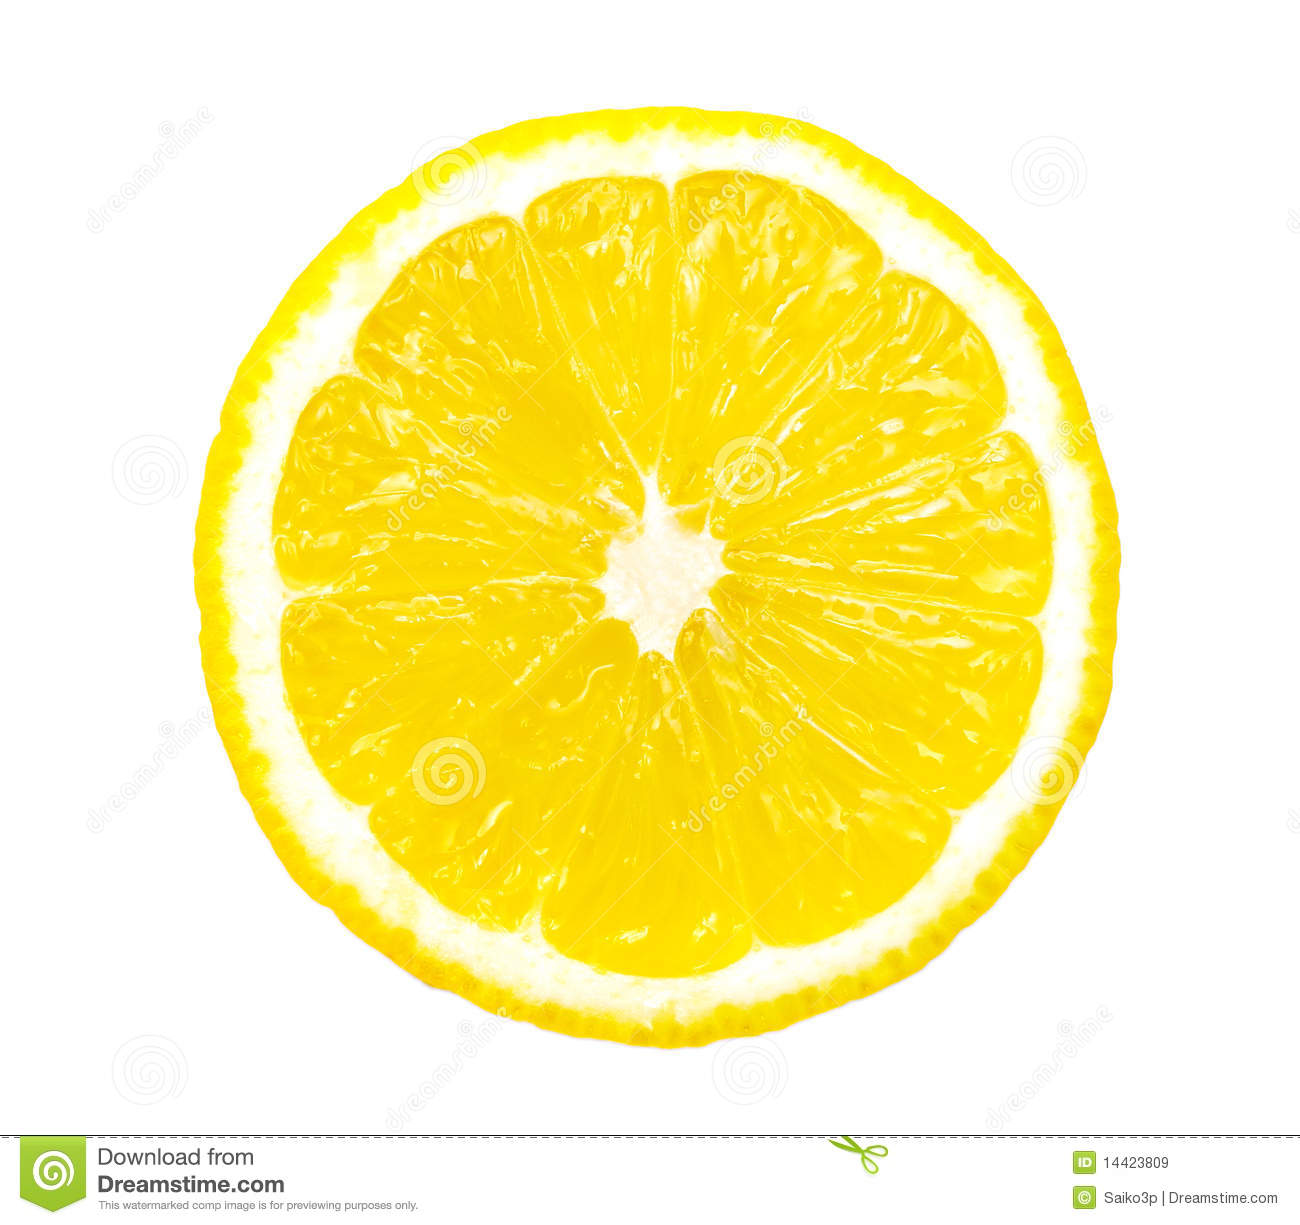 Free PNG Lemon Slice Transparent Lemon Slice.PNG Images.